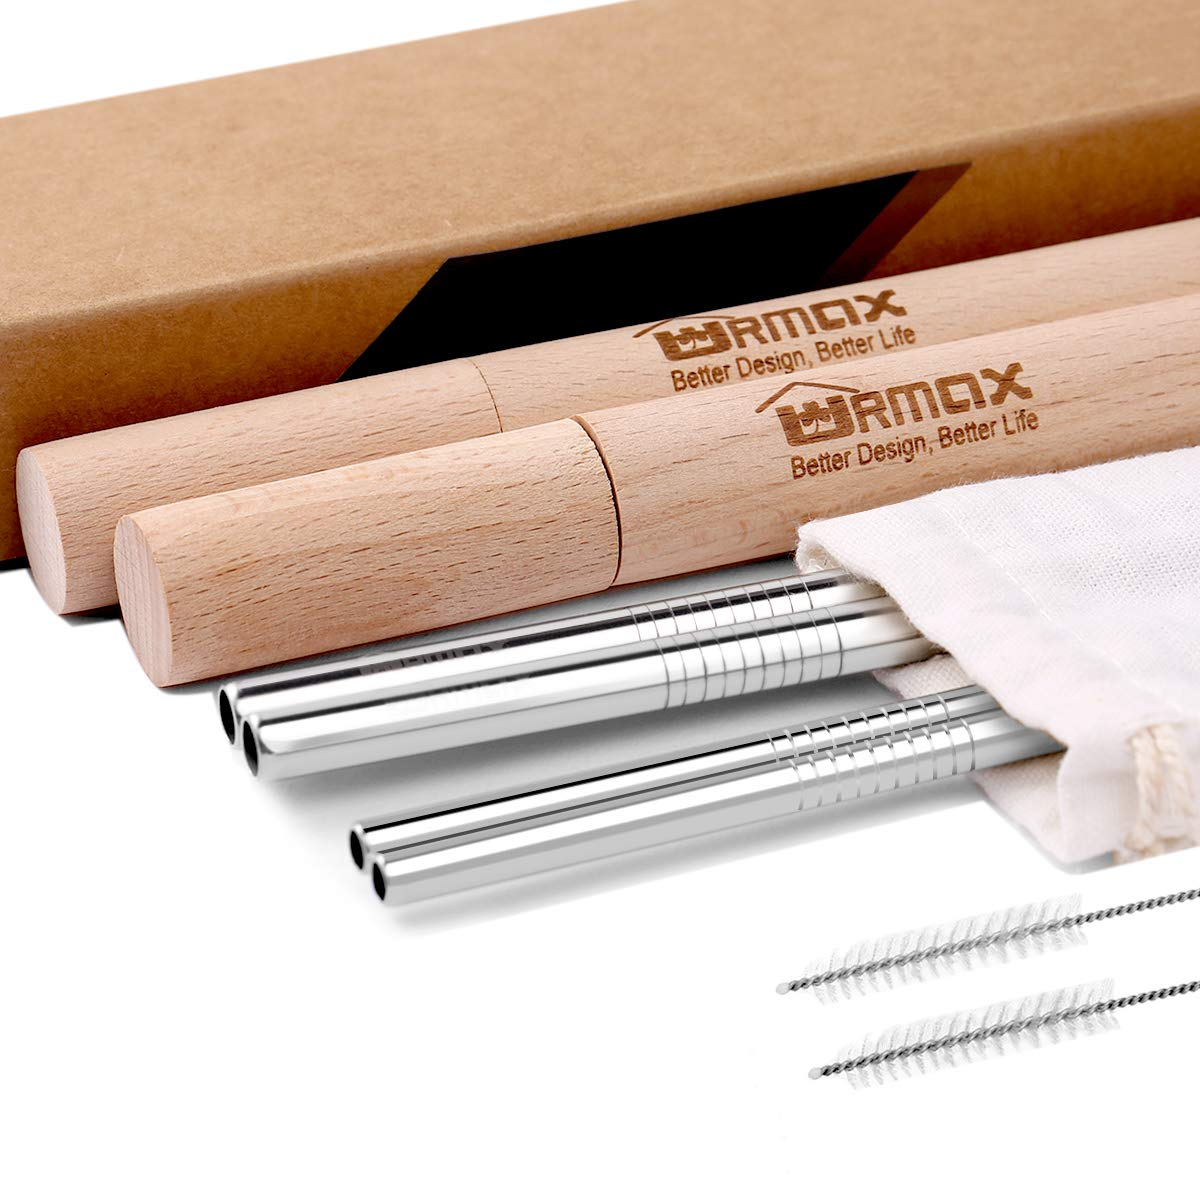 URMax Eco-Friendly Reusable, Premium Stainless Steel Metal Drinking Straws & 2 Handcrafted Wooden Travel Cases - 8.5 inches Straw Set of 6 & 2 Cleaning Brushes For Tumblers/Yeti / Ozark